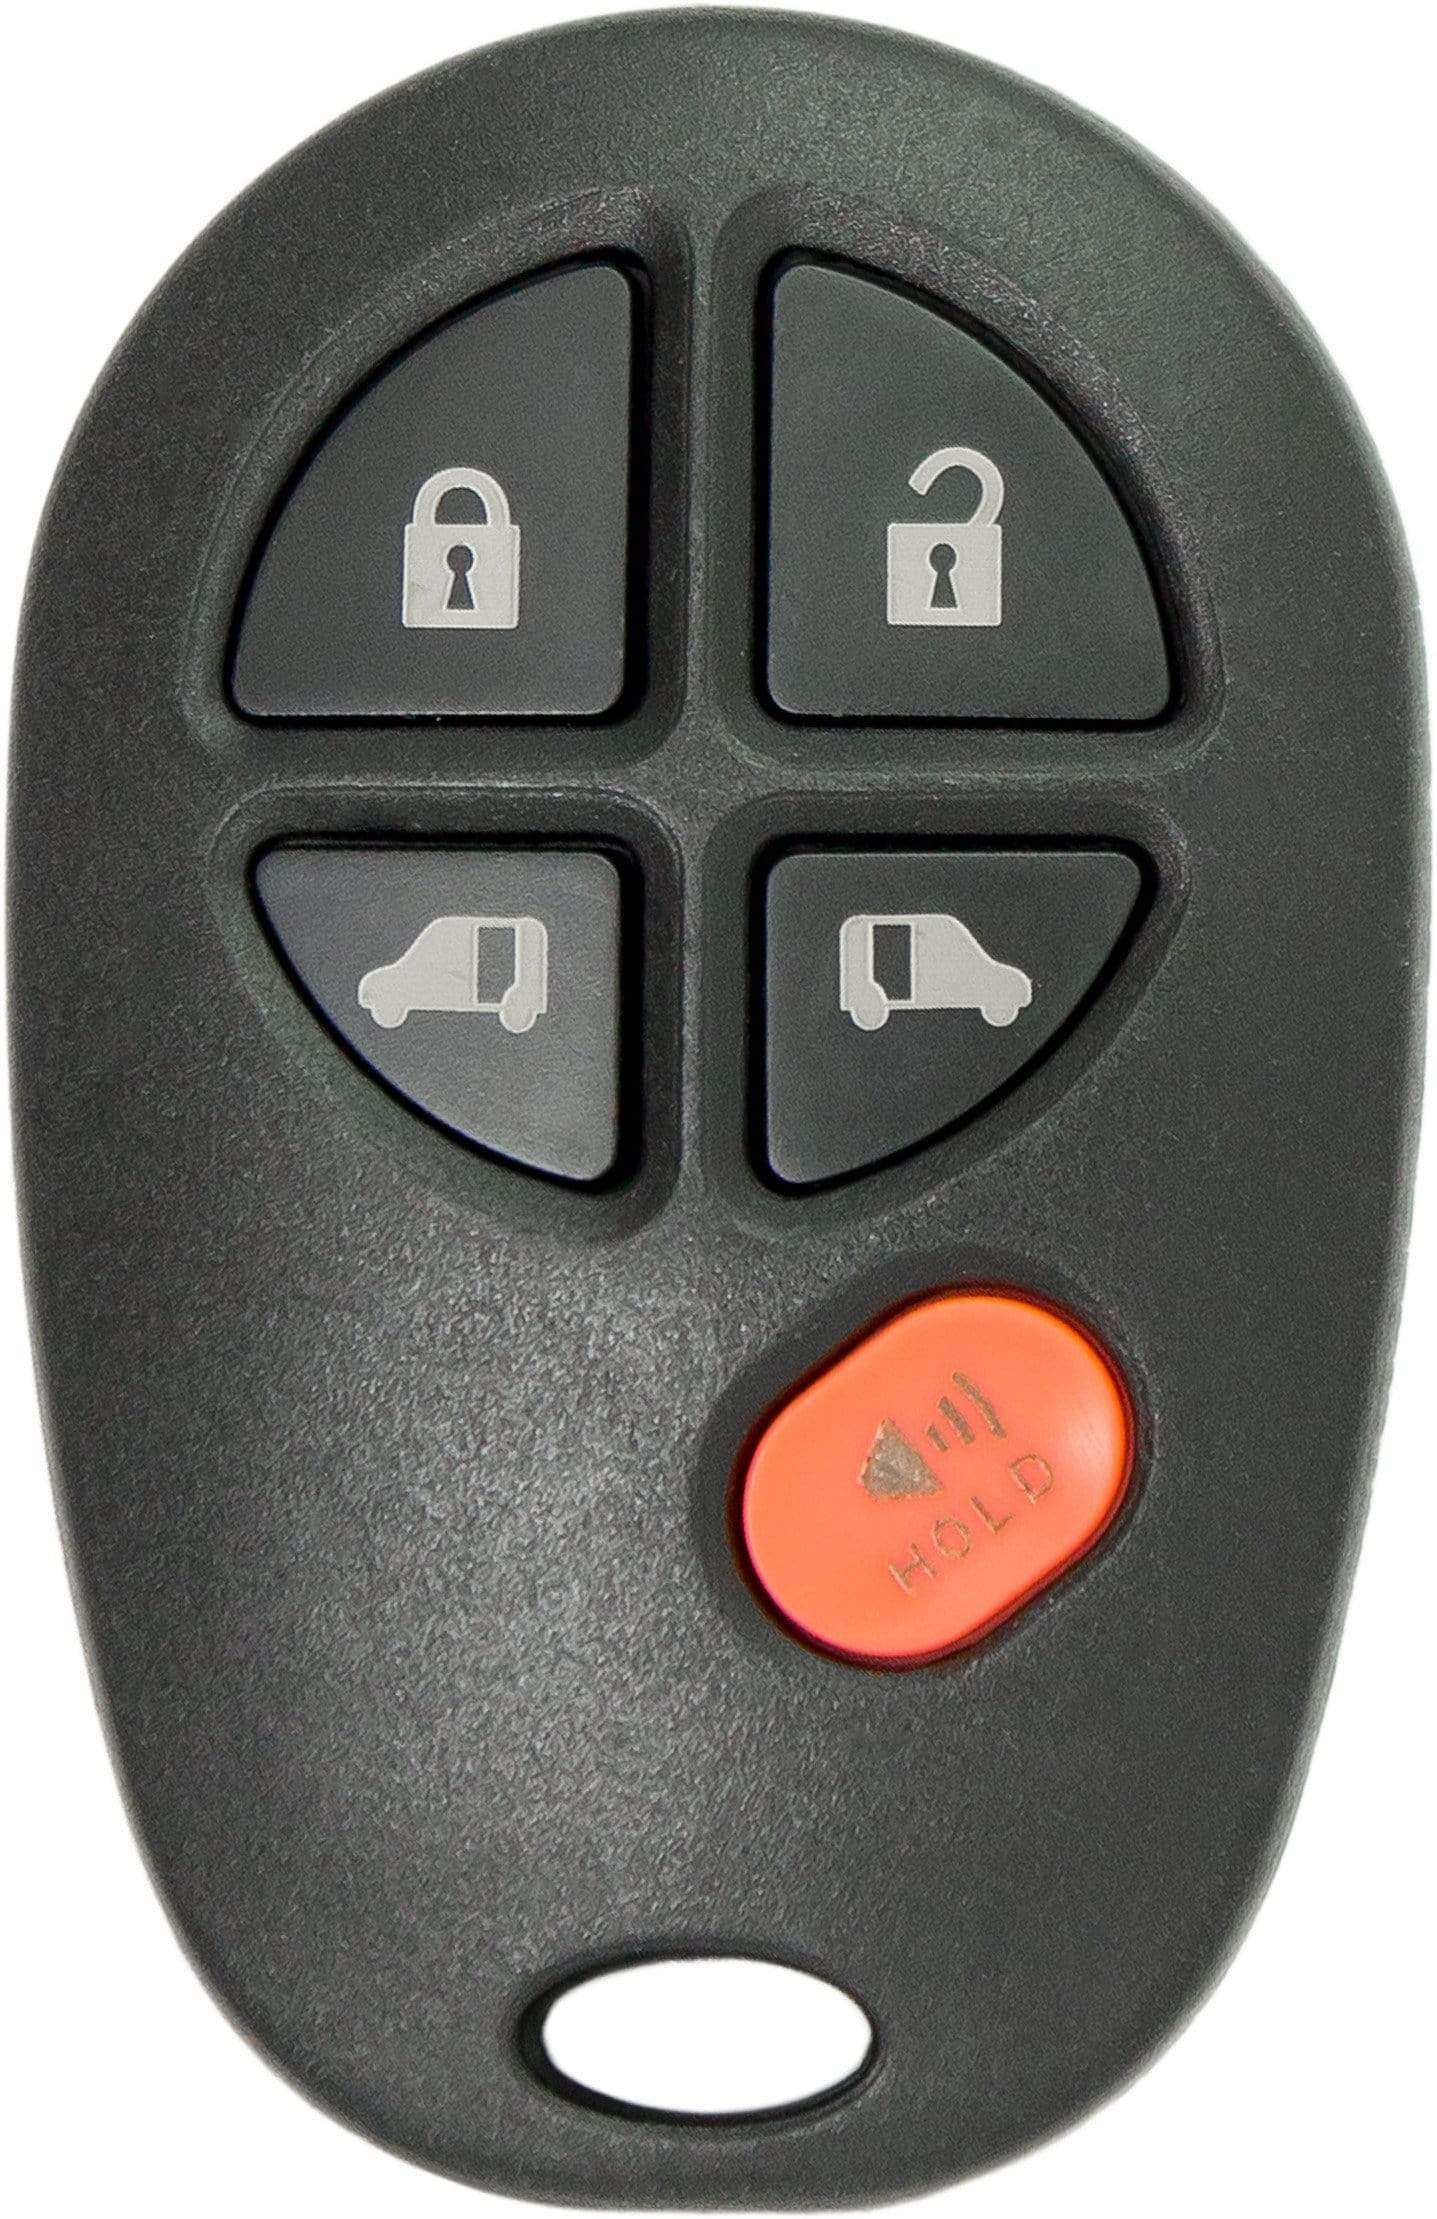 Toyota Sienna 5 Button Remote Keyless Entry (5B1) - By Ilco